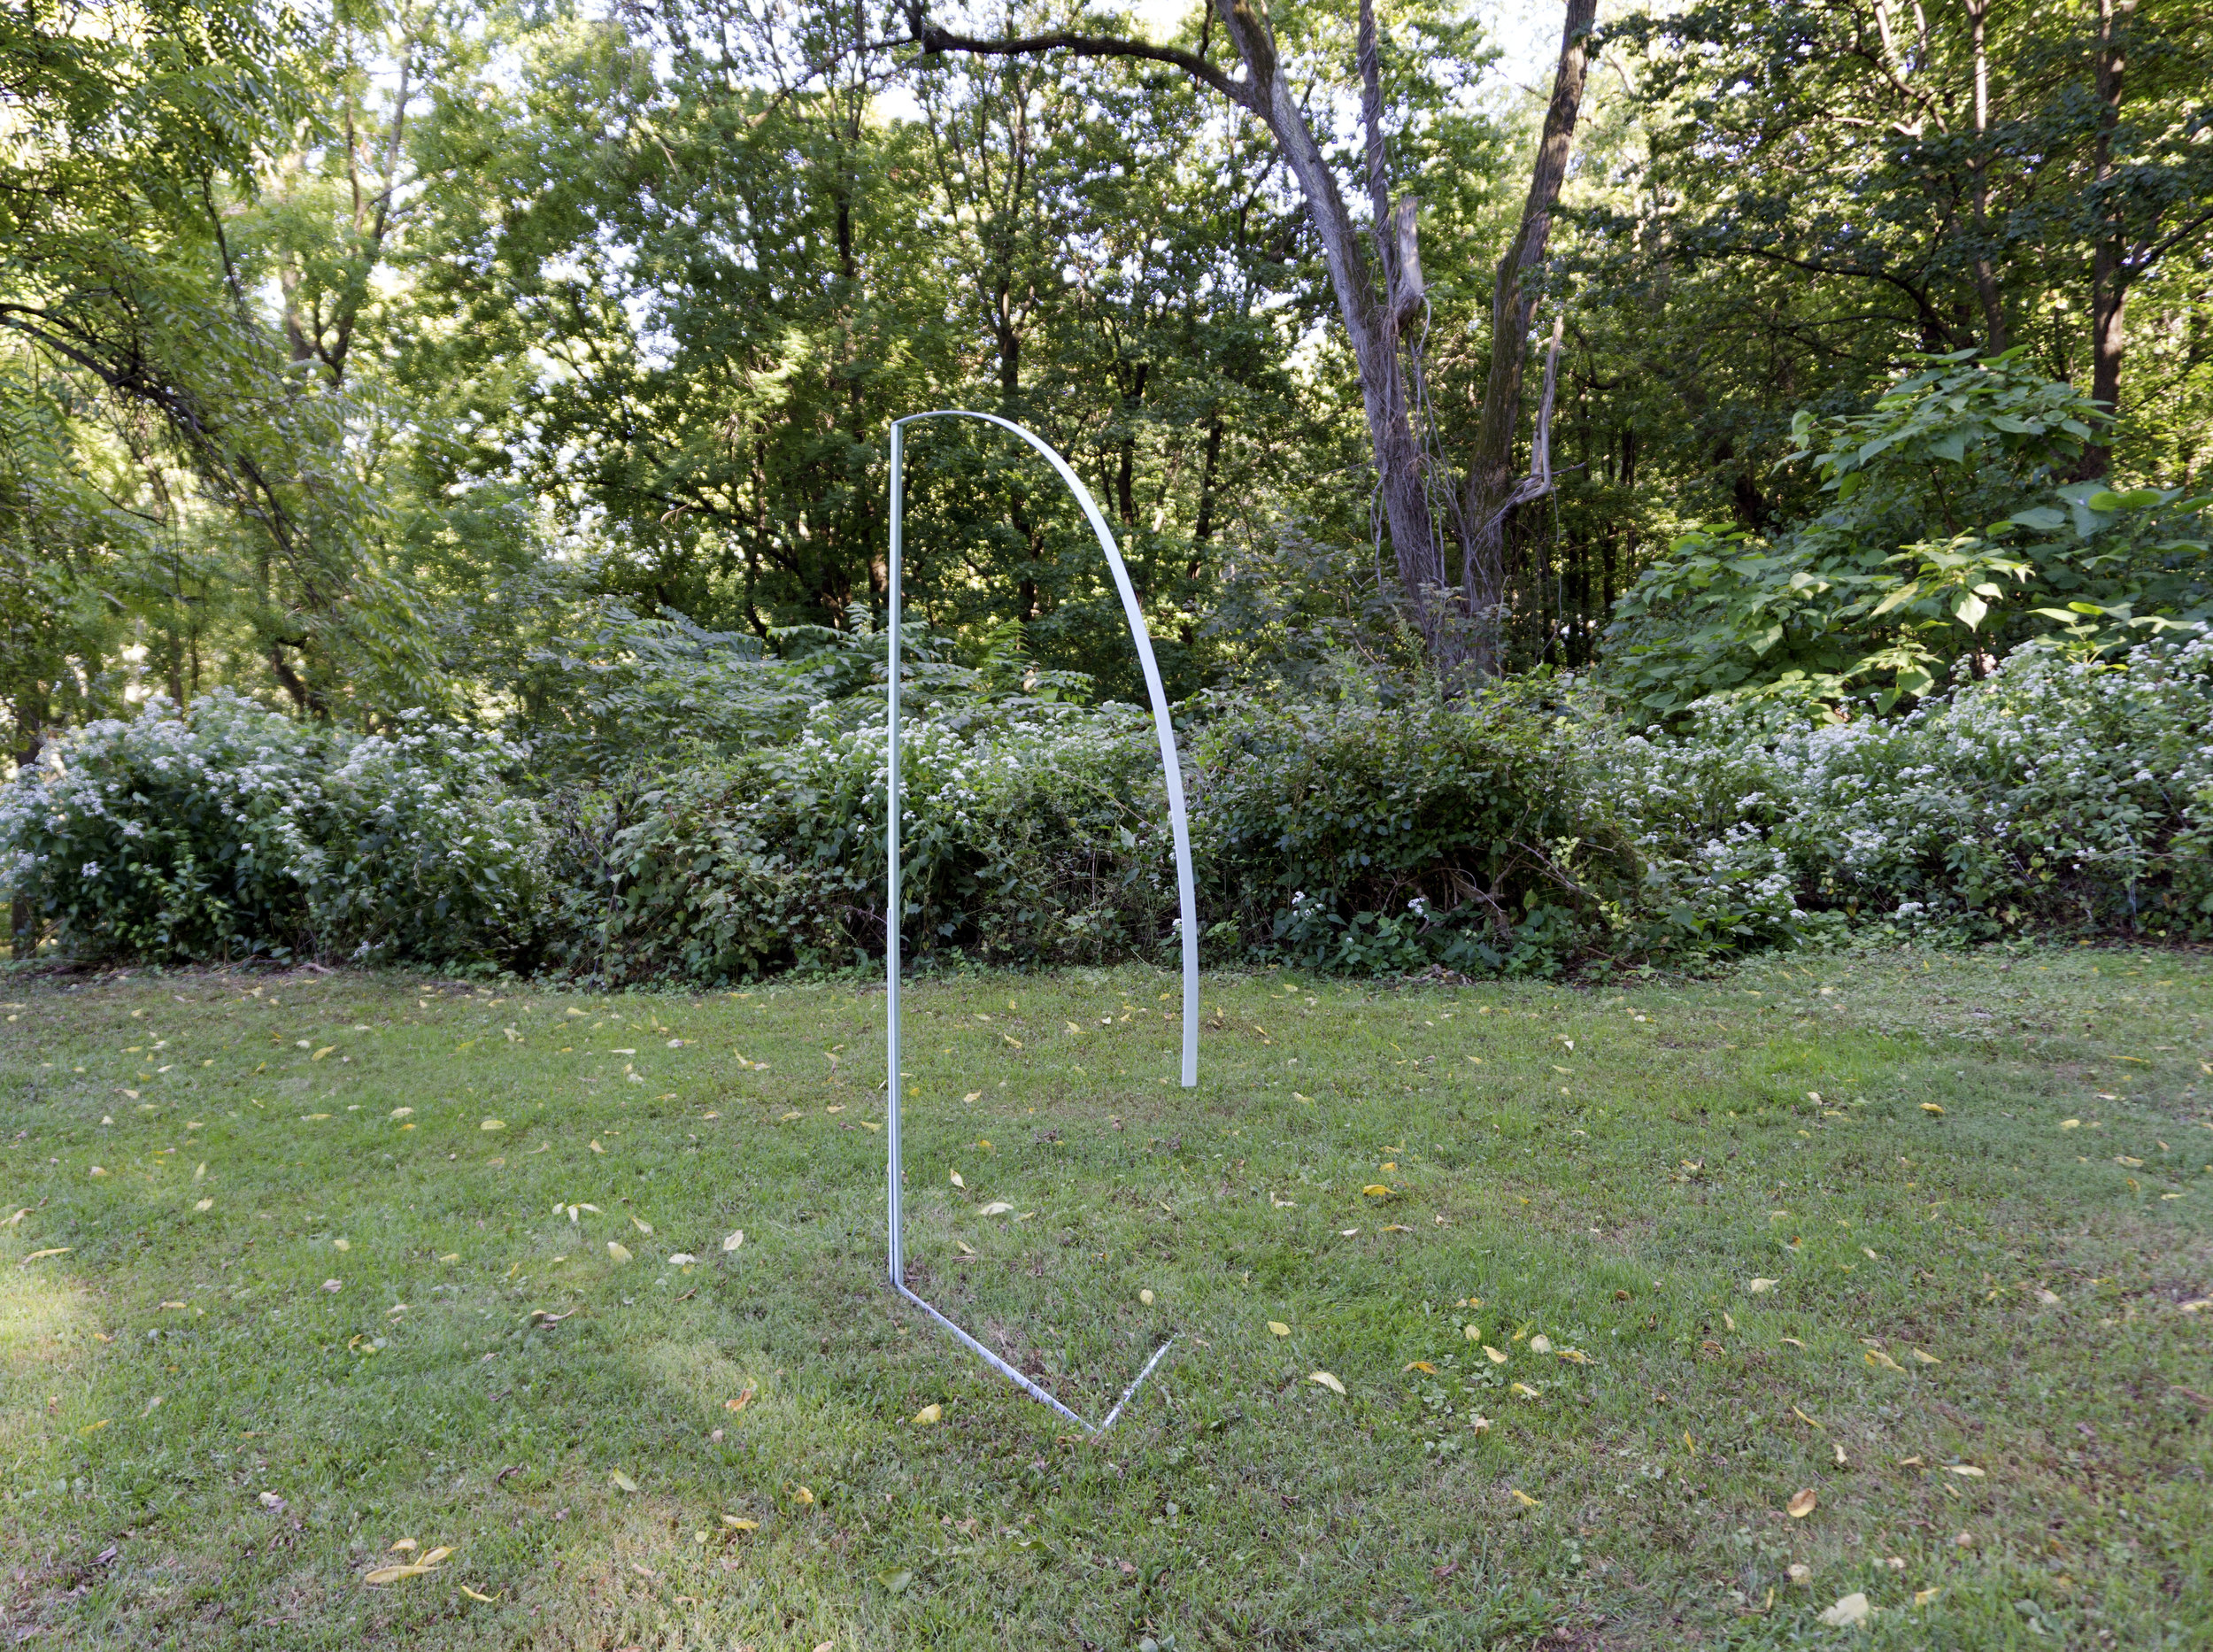 Blue Bang , 96in x 50in, metal , paint, 2017 at Glenlily Grounds Out door Sculpture Exhibitions, Newburgh, NY.